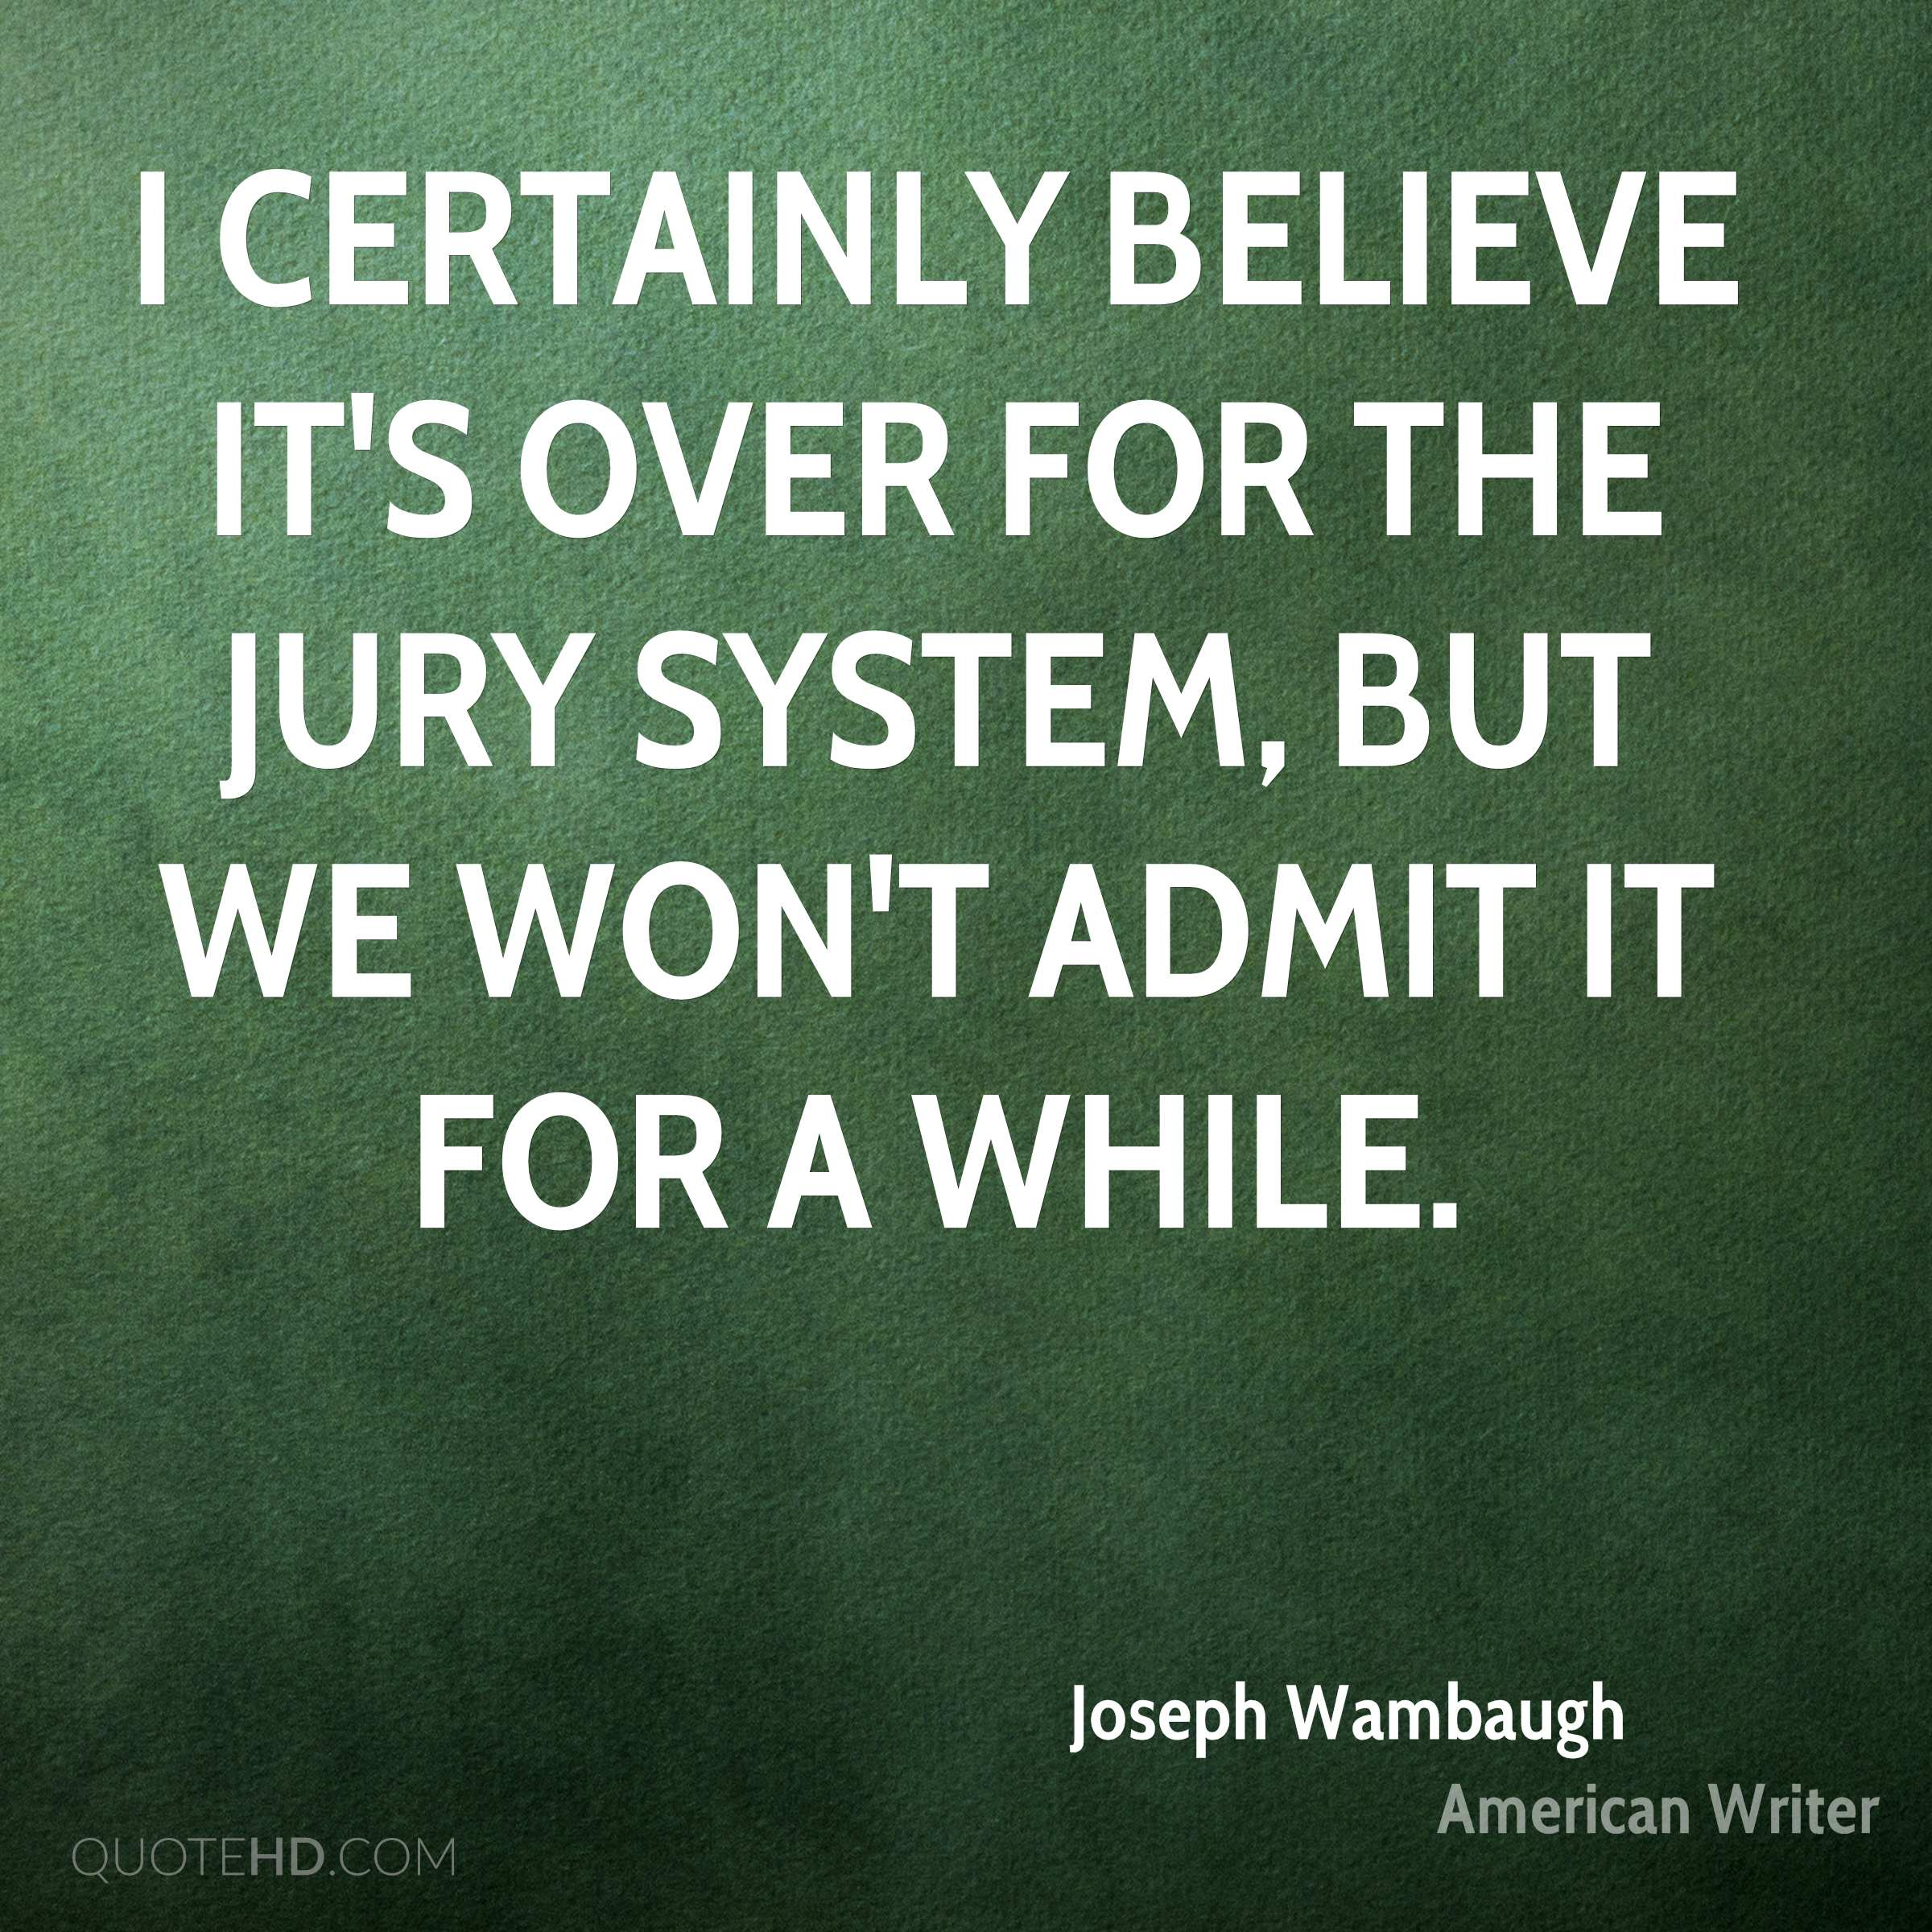 I certainly believe it's over for the jury system, but we won't admit it for a while.